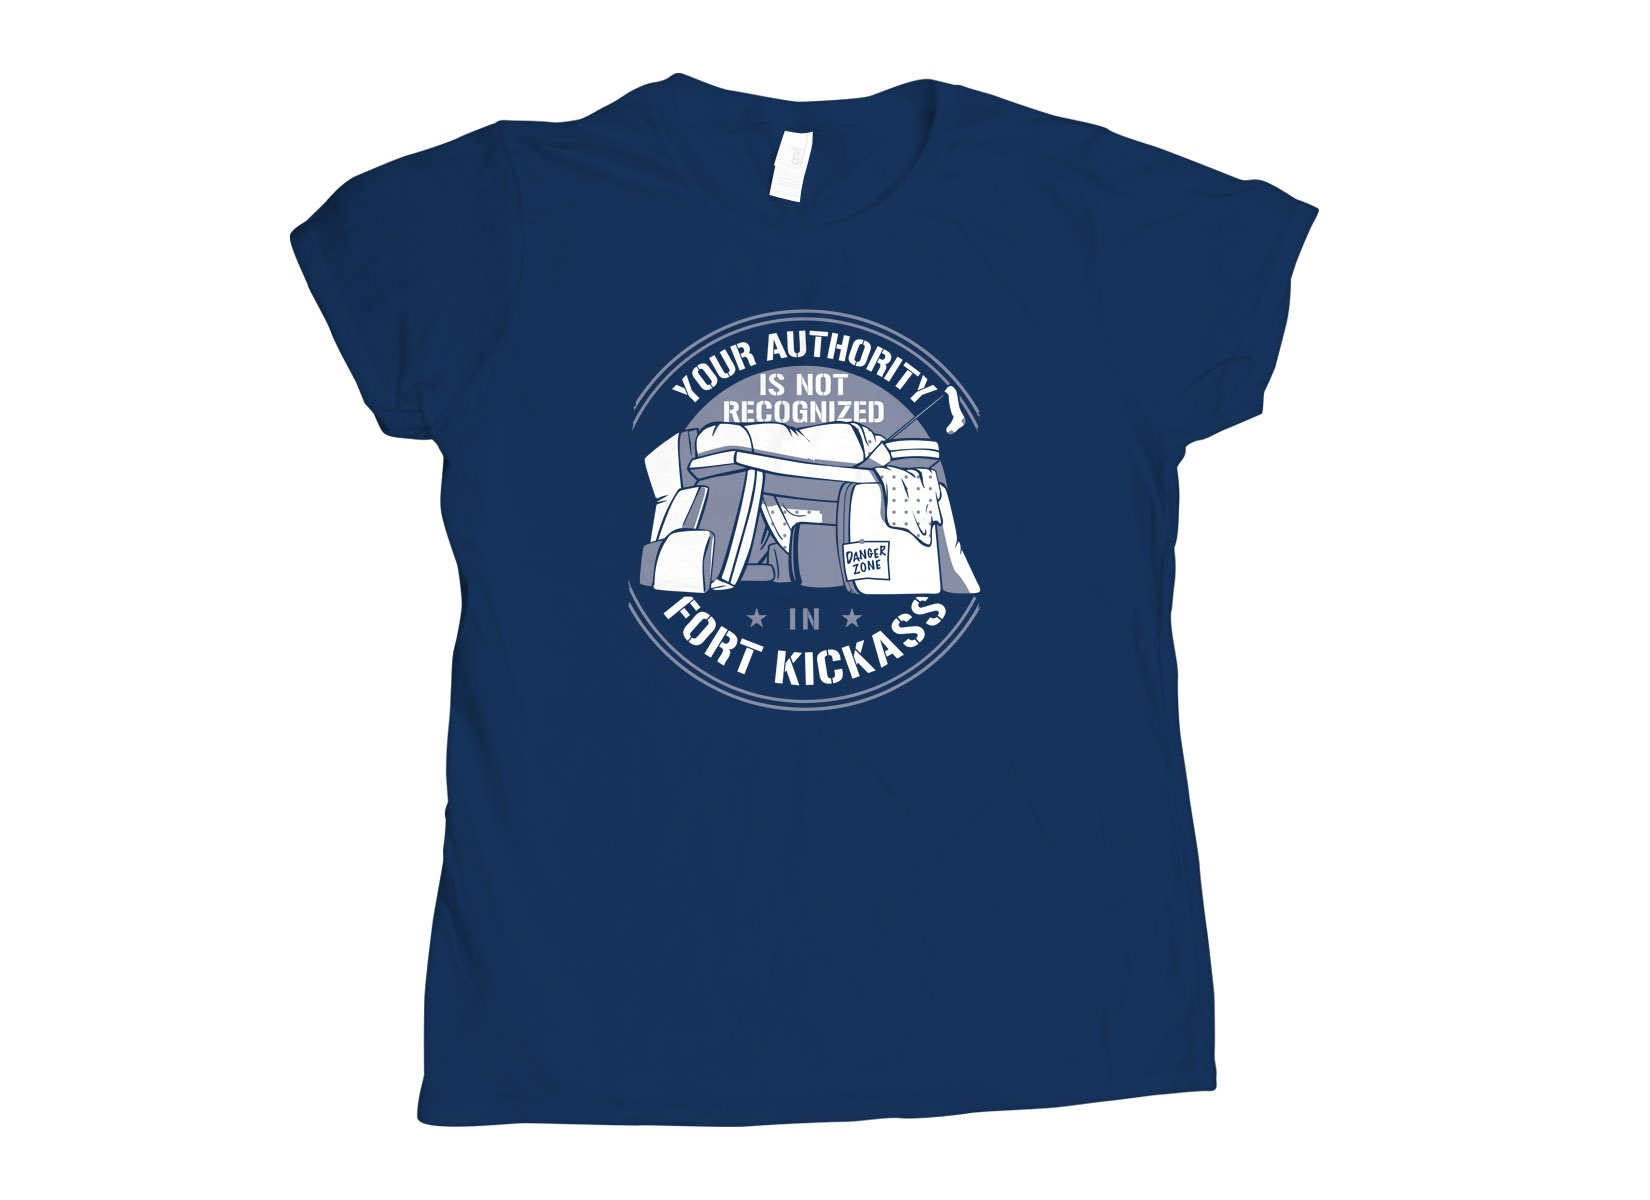 Your Authority Is Not Recognized In Fort Kickass on Womens T-Shirt